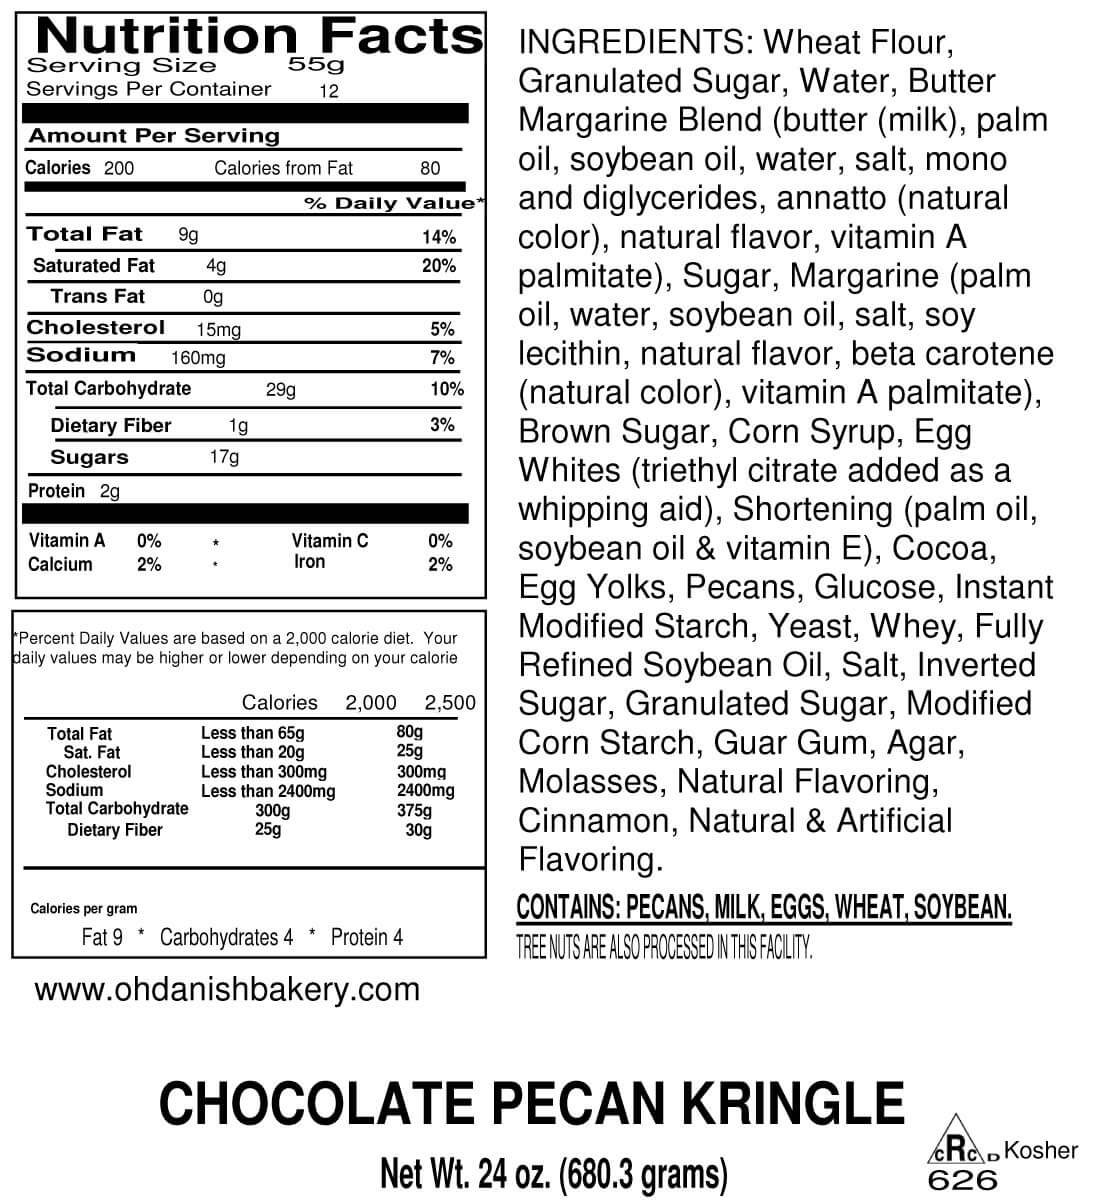 Nutritional Label for Chocolate Pecan Kringle